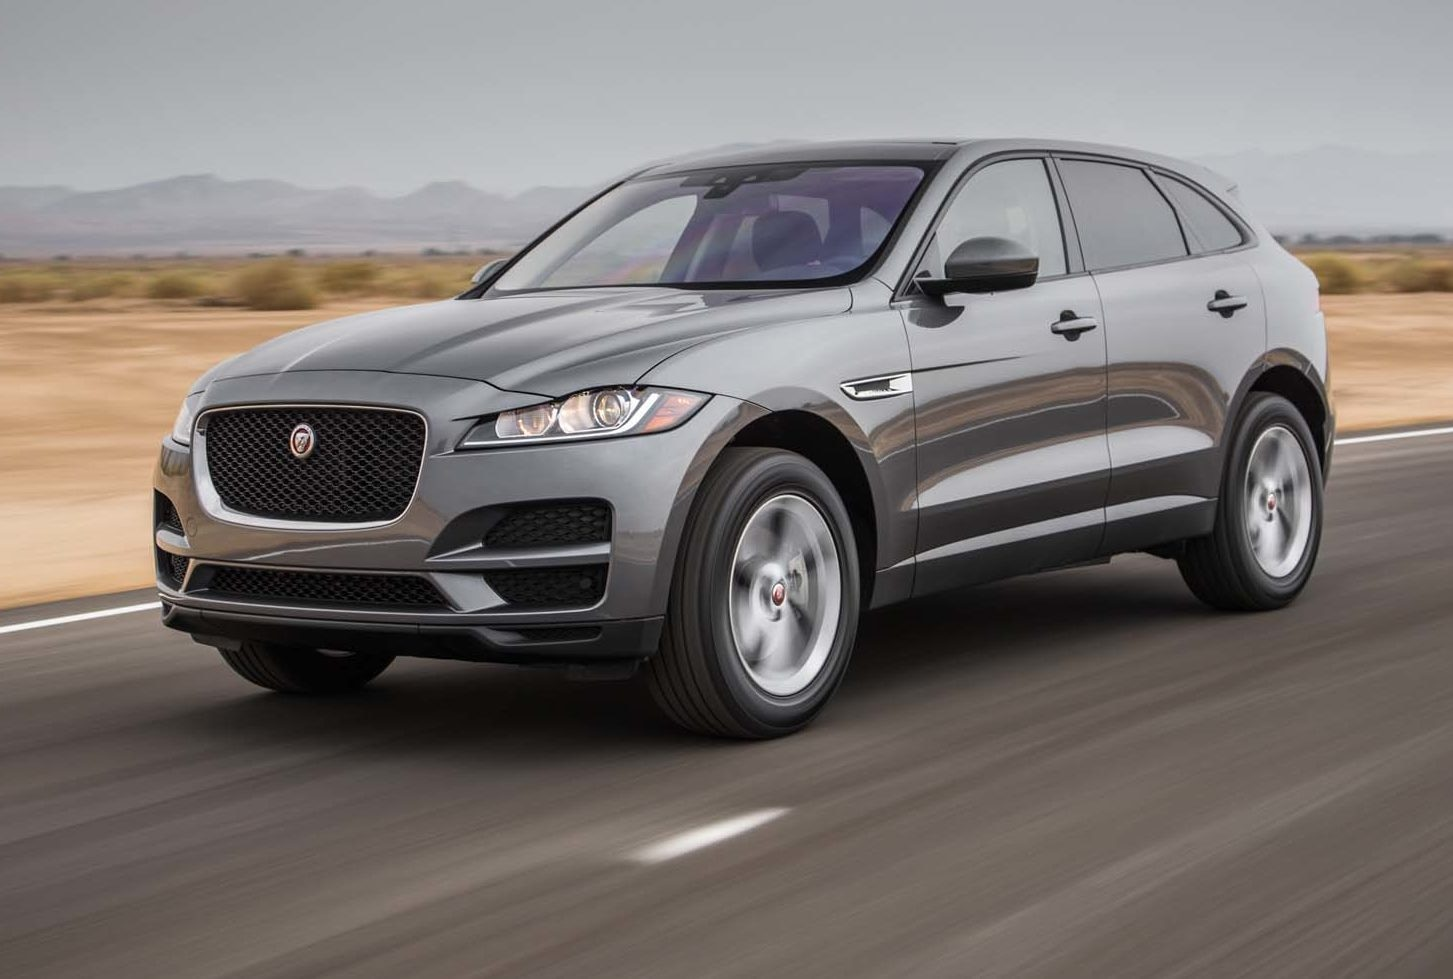 2017 Jaguar F Pace 35t AWD Front Three Quarter In Motion 03 1 E1478014268350